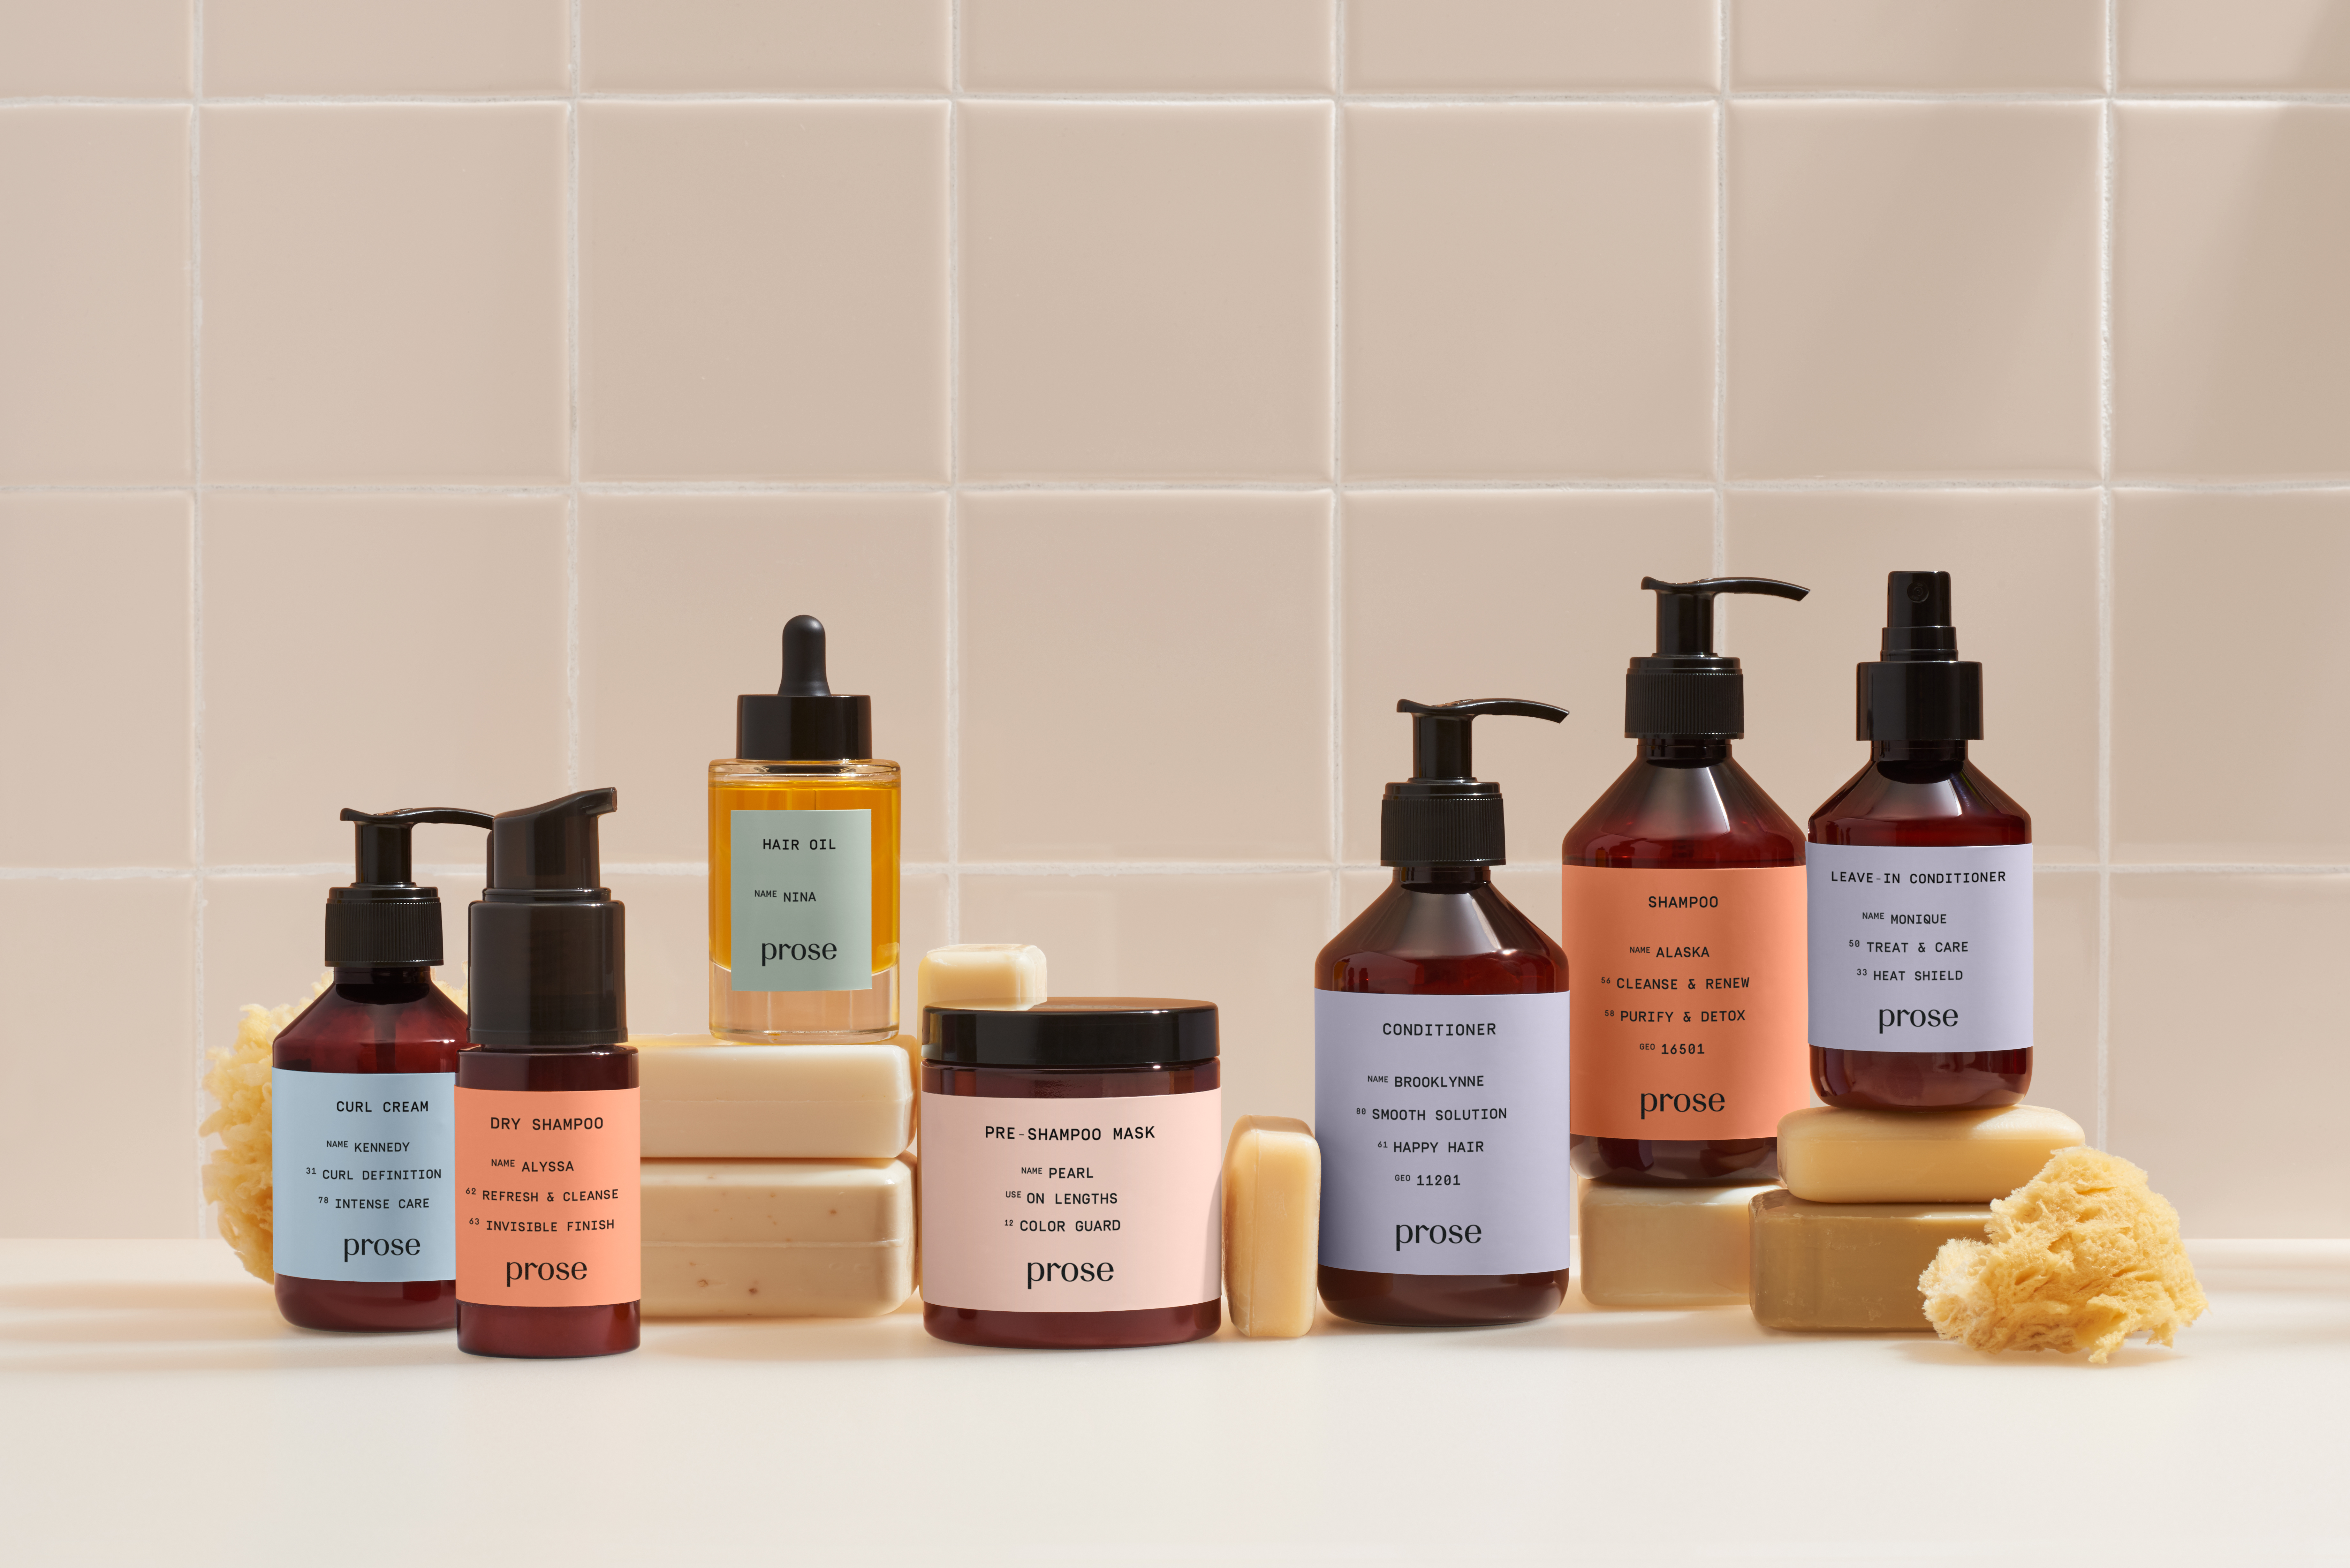 lineup of all prose products against a tan bathroom background